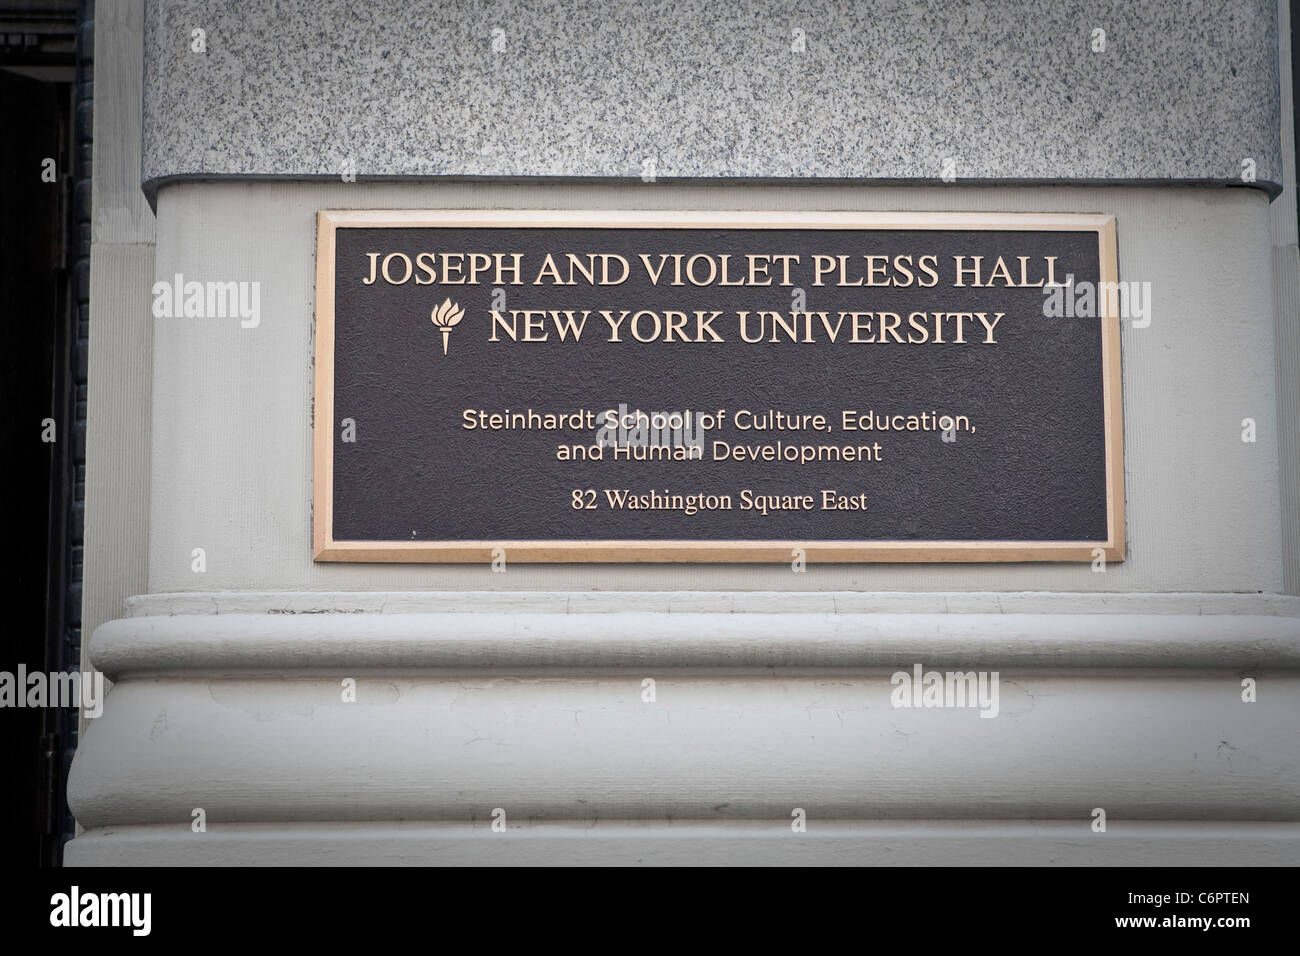 Joseph and Violet Pless Hall of the New York University is pictured in the New York City borough of Manhattan - Stock Image